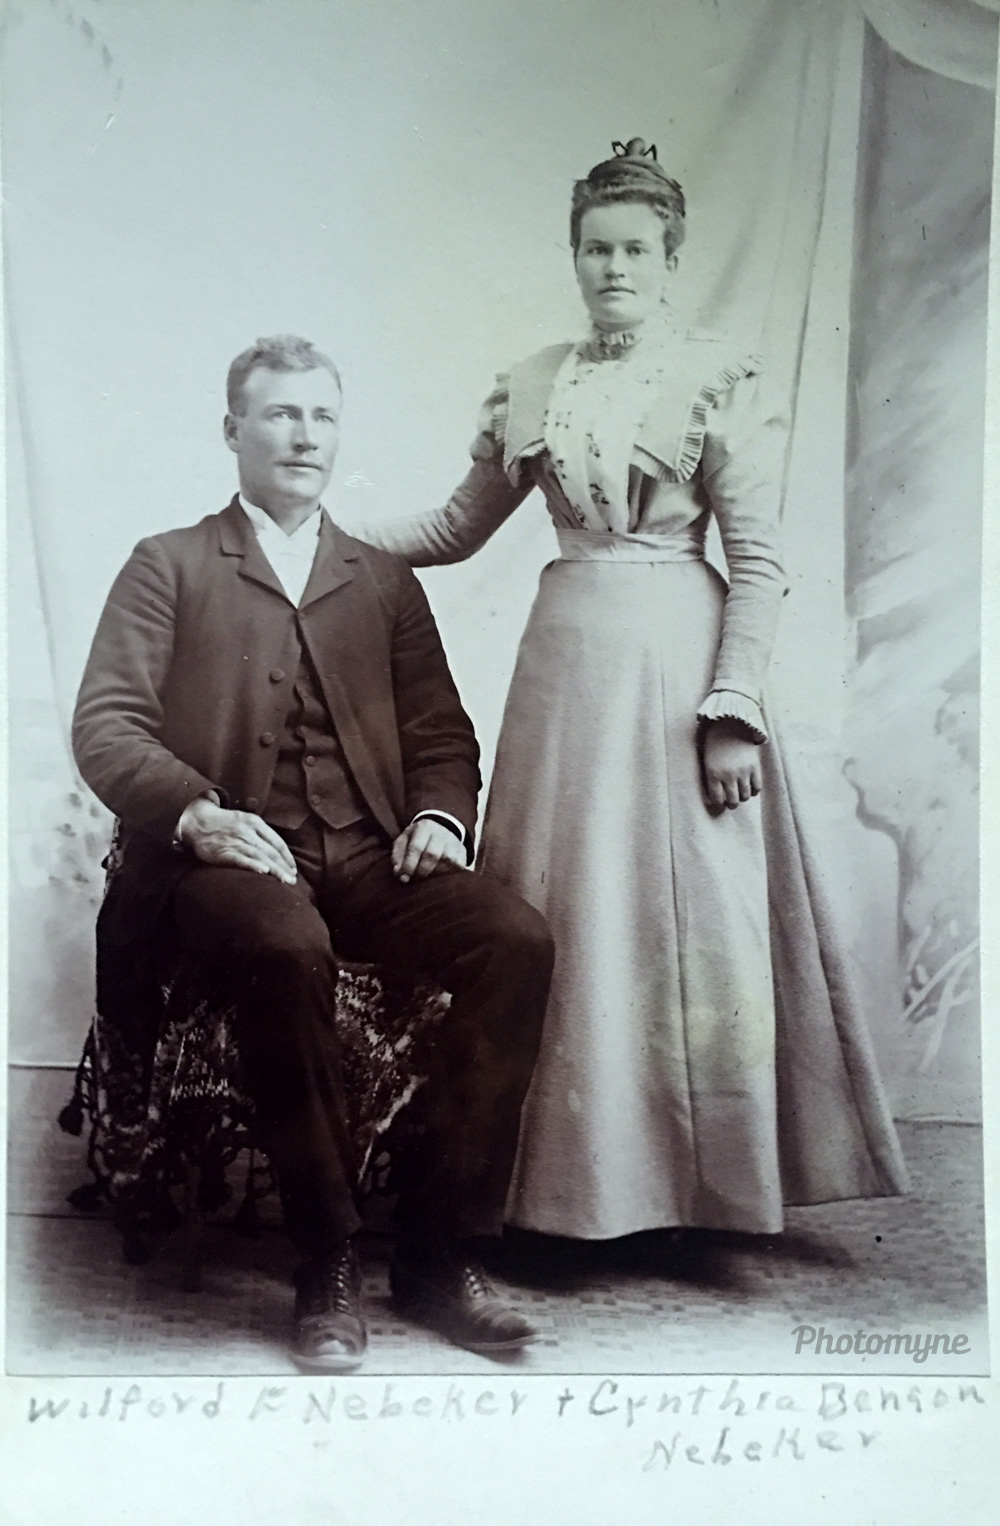 My grandparents, Wilford Franklin Nebeker and new wife Cynthia Benson Nebeker, 1898, US